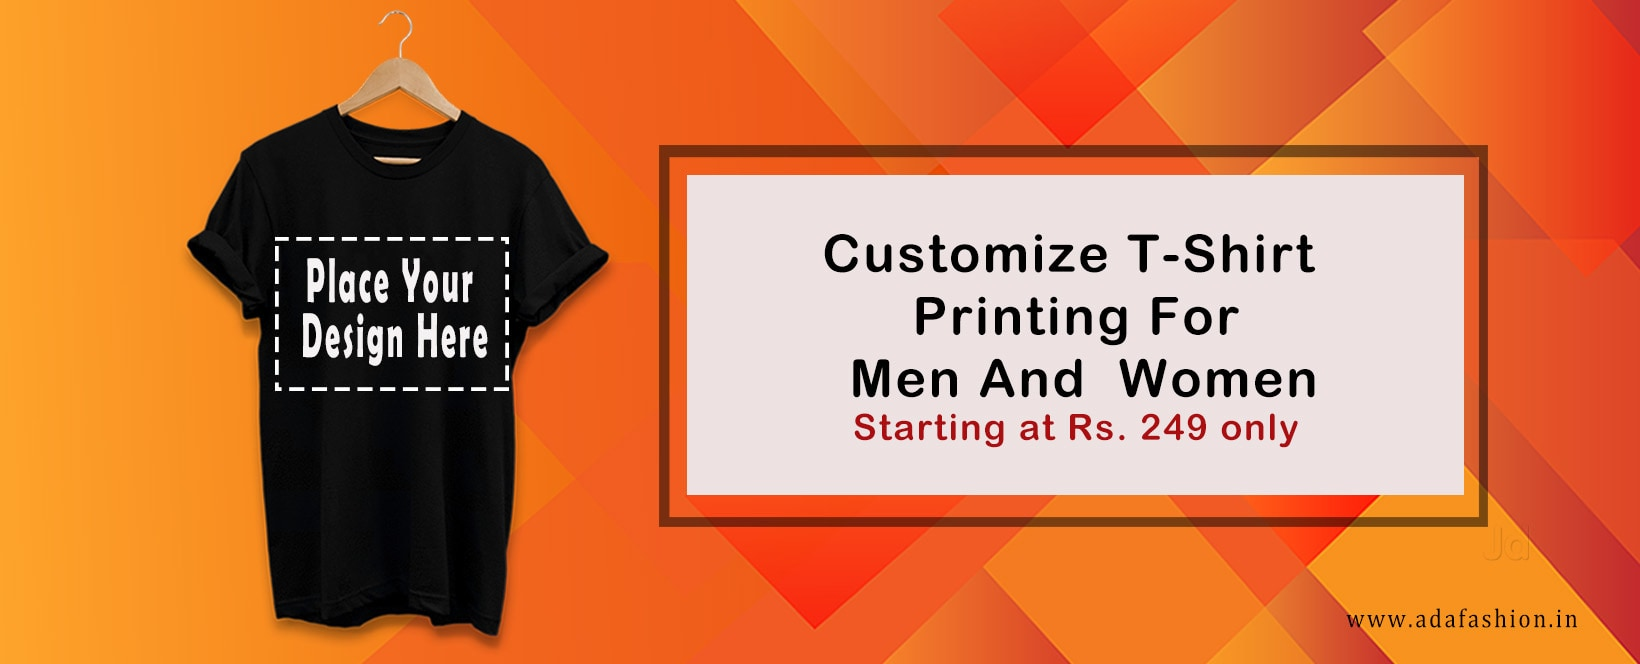 Top 100 Logo Printing Services in Delhi - Justdial 8498b9858a